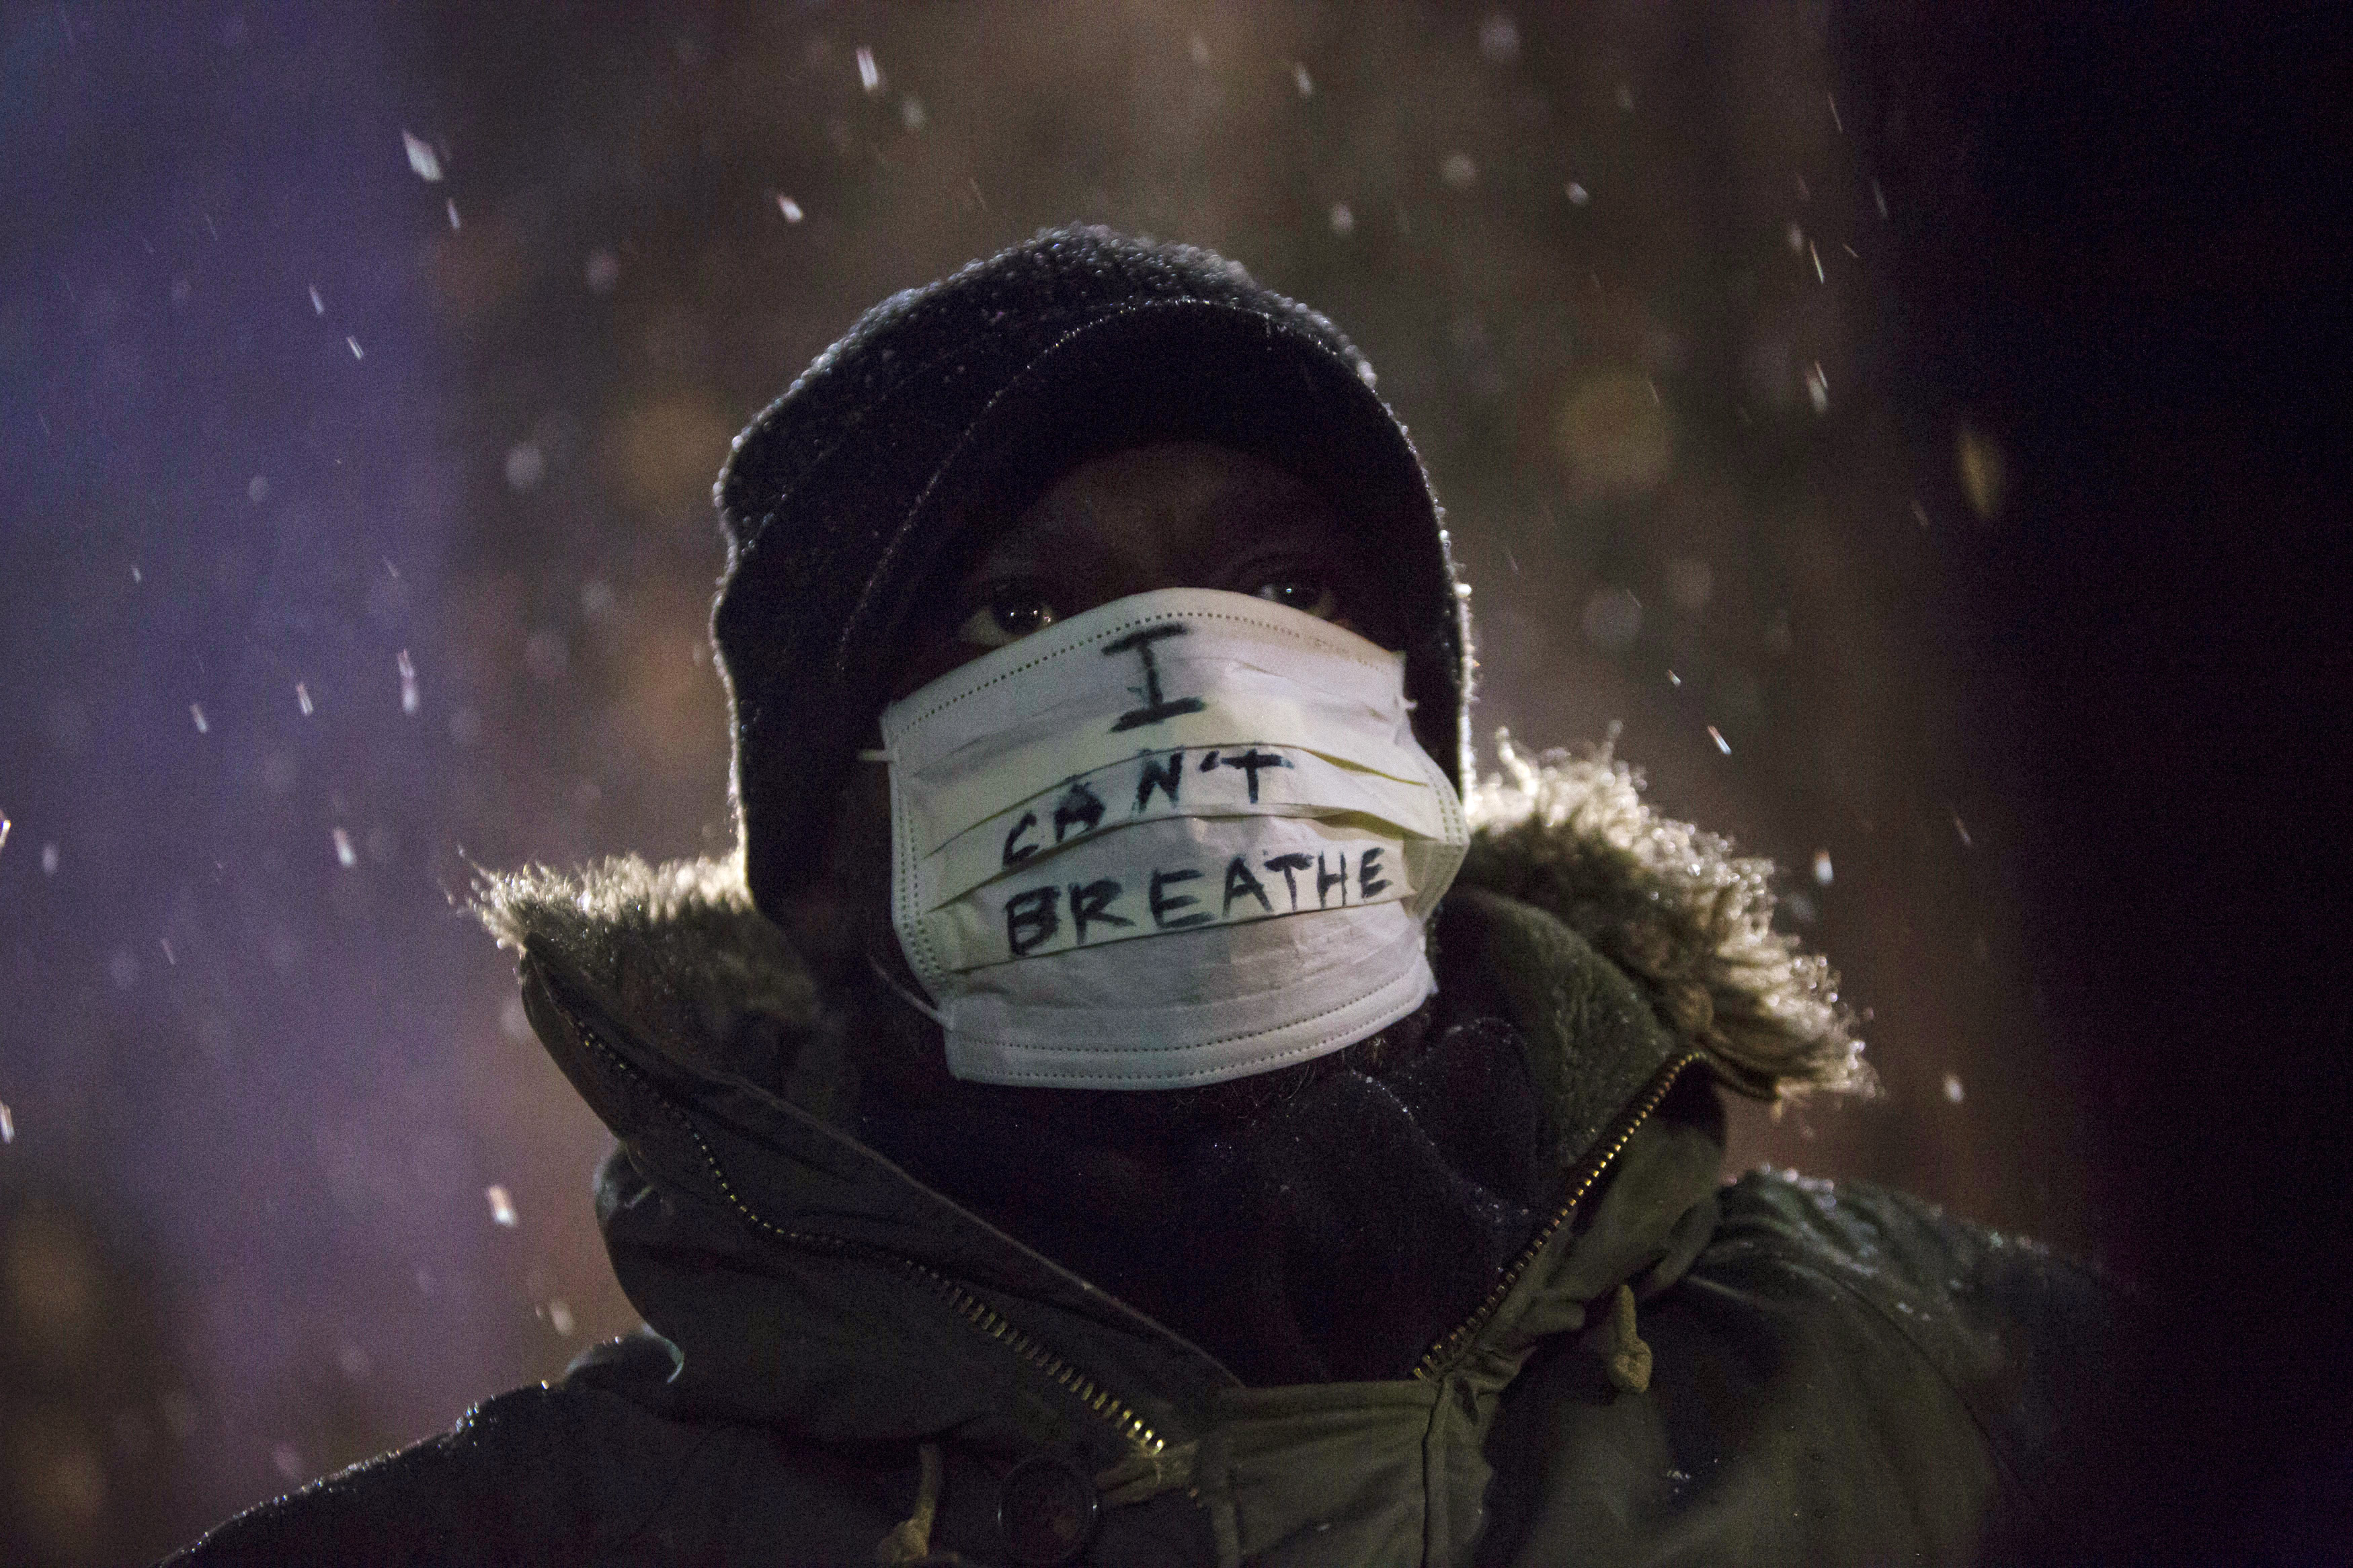 A man stands in falling snow following a news conference where members of Justice League NYC presented a list of demands at City Hall in New York Dec. 10, 2014